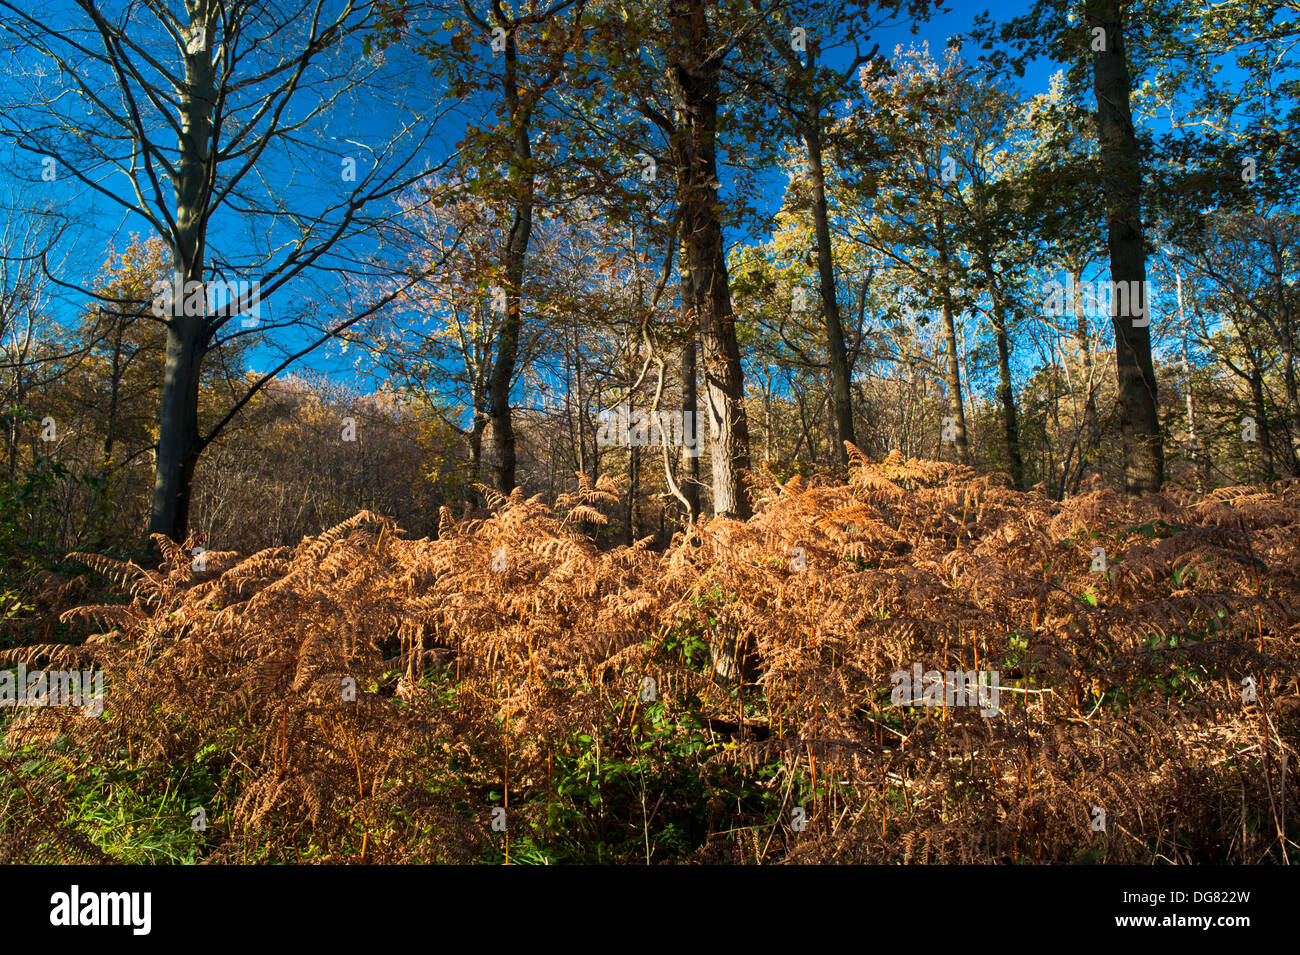 brown bracken in autumn at the edge of woodland at bedford purlieus stock photo alamy alamy